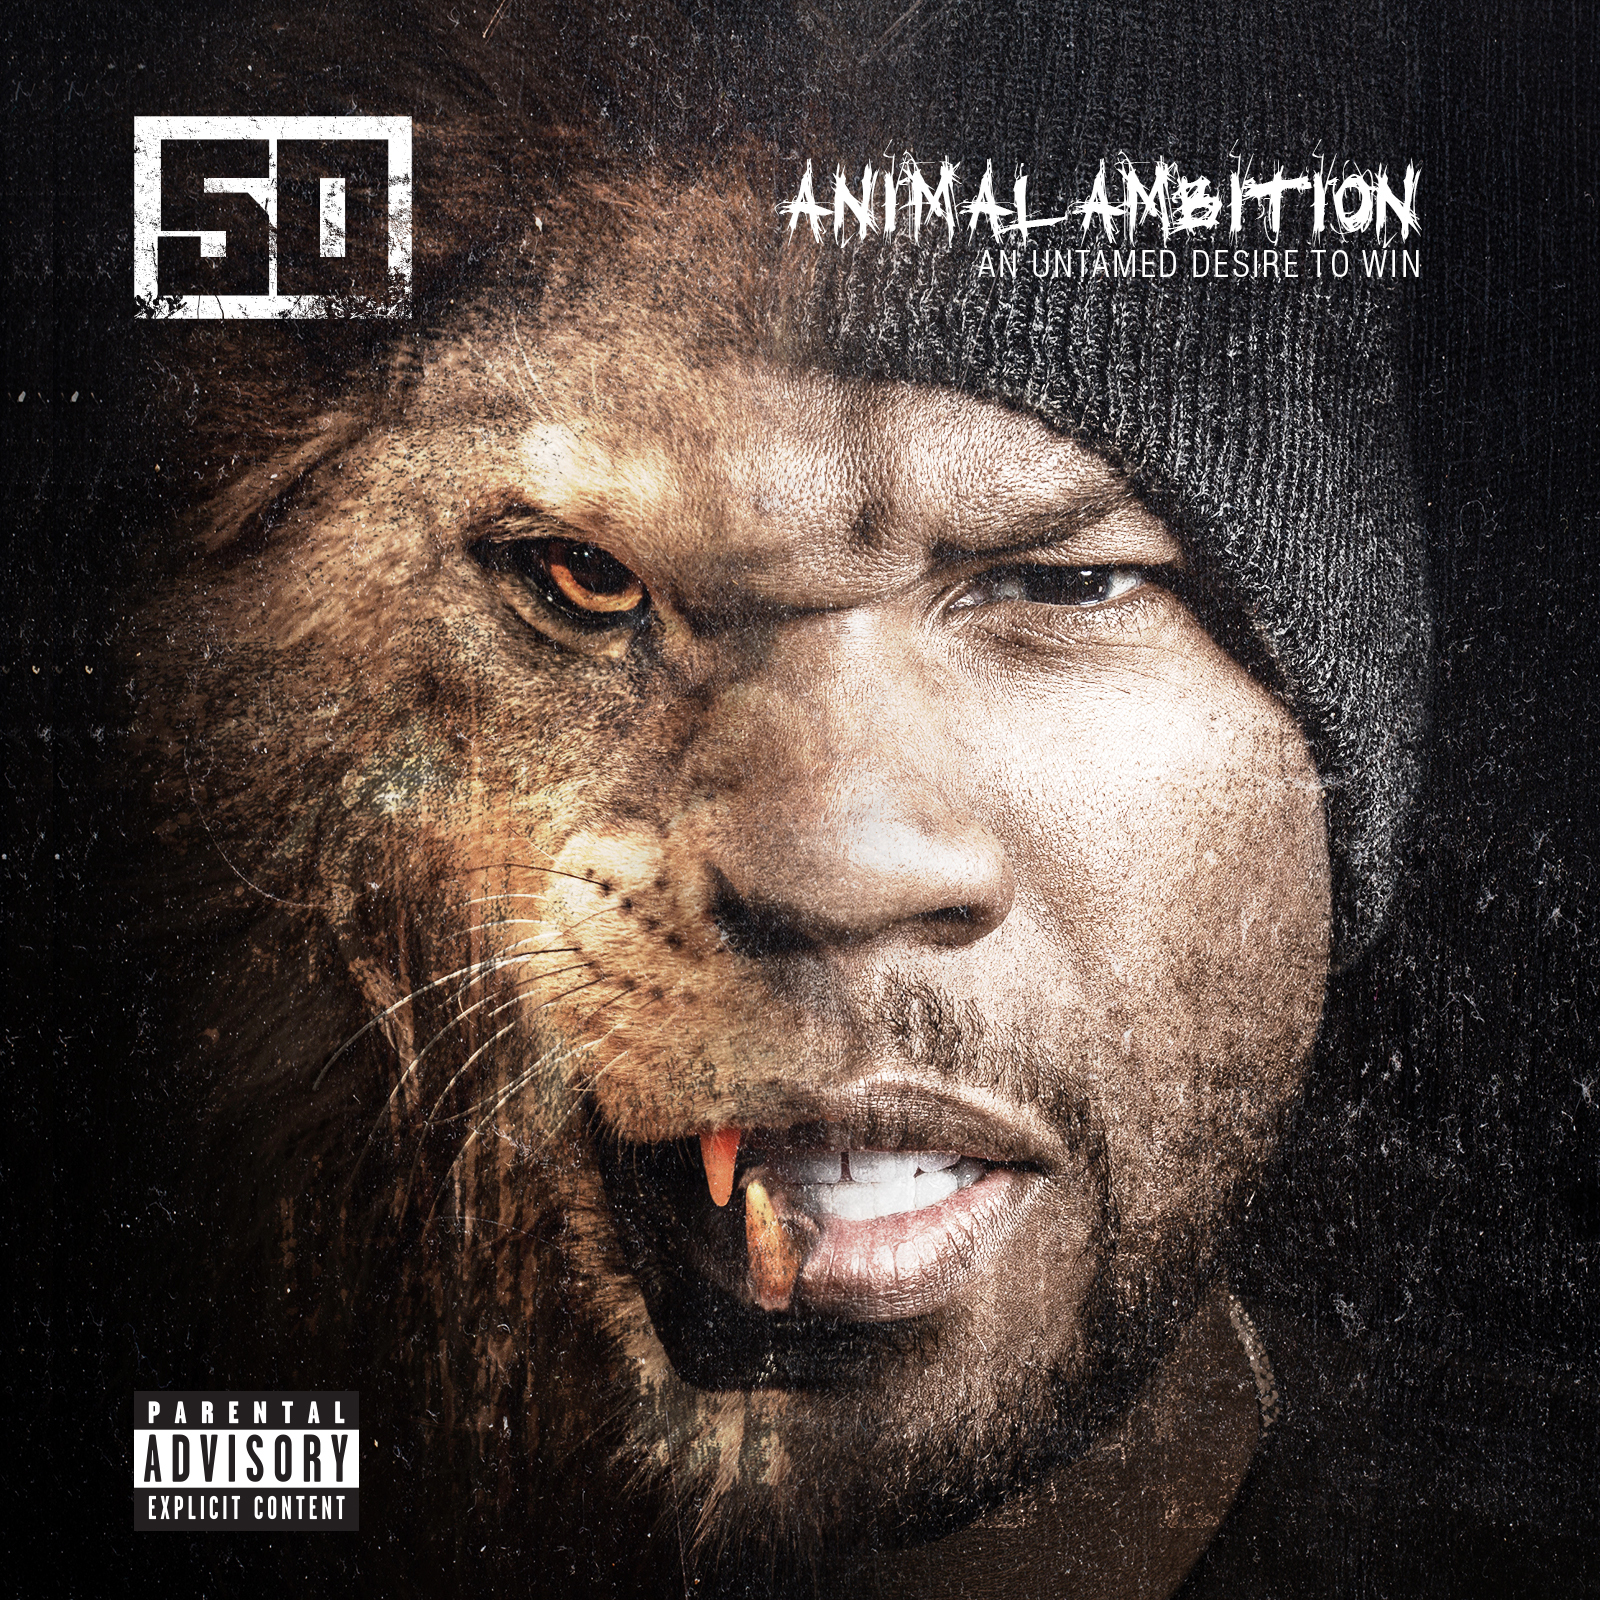 50 CENT's 'Animal Ambition' Album' to Be Released 6/3